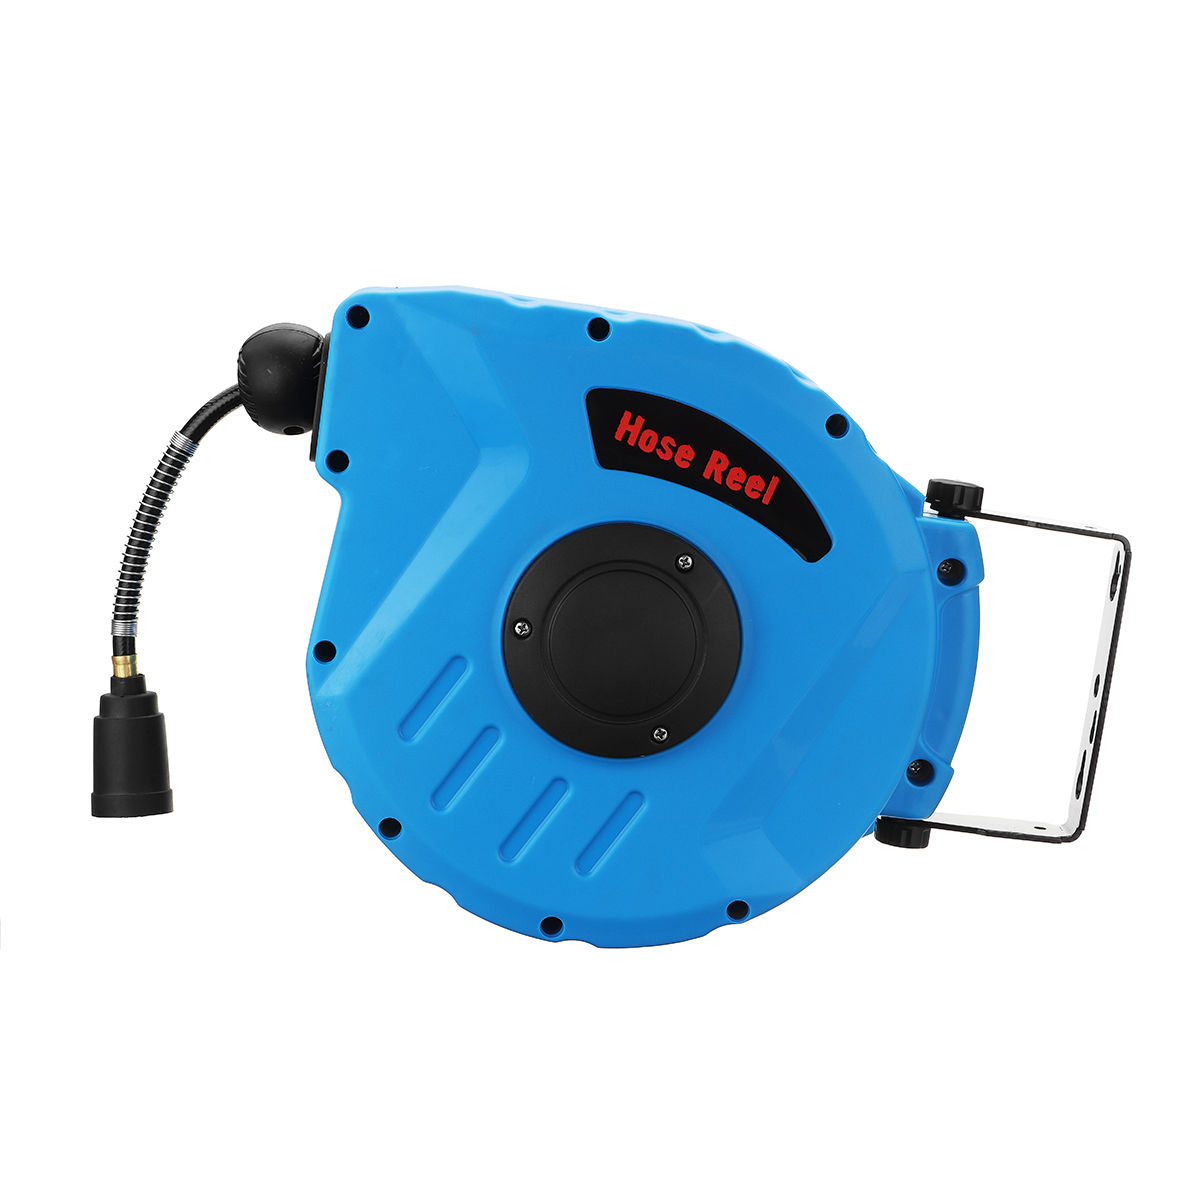 1/4 Inch 12M Retractable Auto Rewind Air 260PSI Hose Reel 180° Rotation Wall Mount Tools Kit